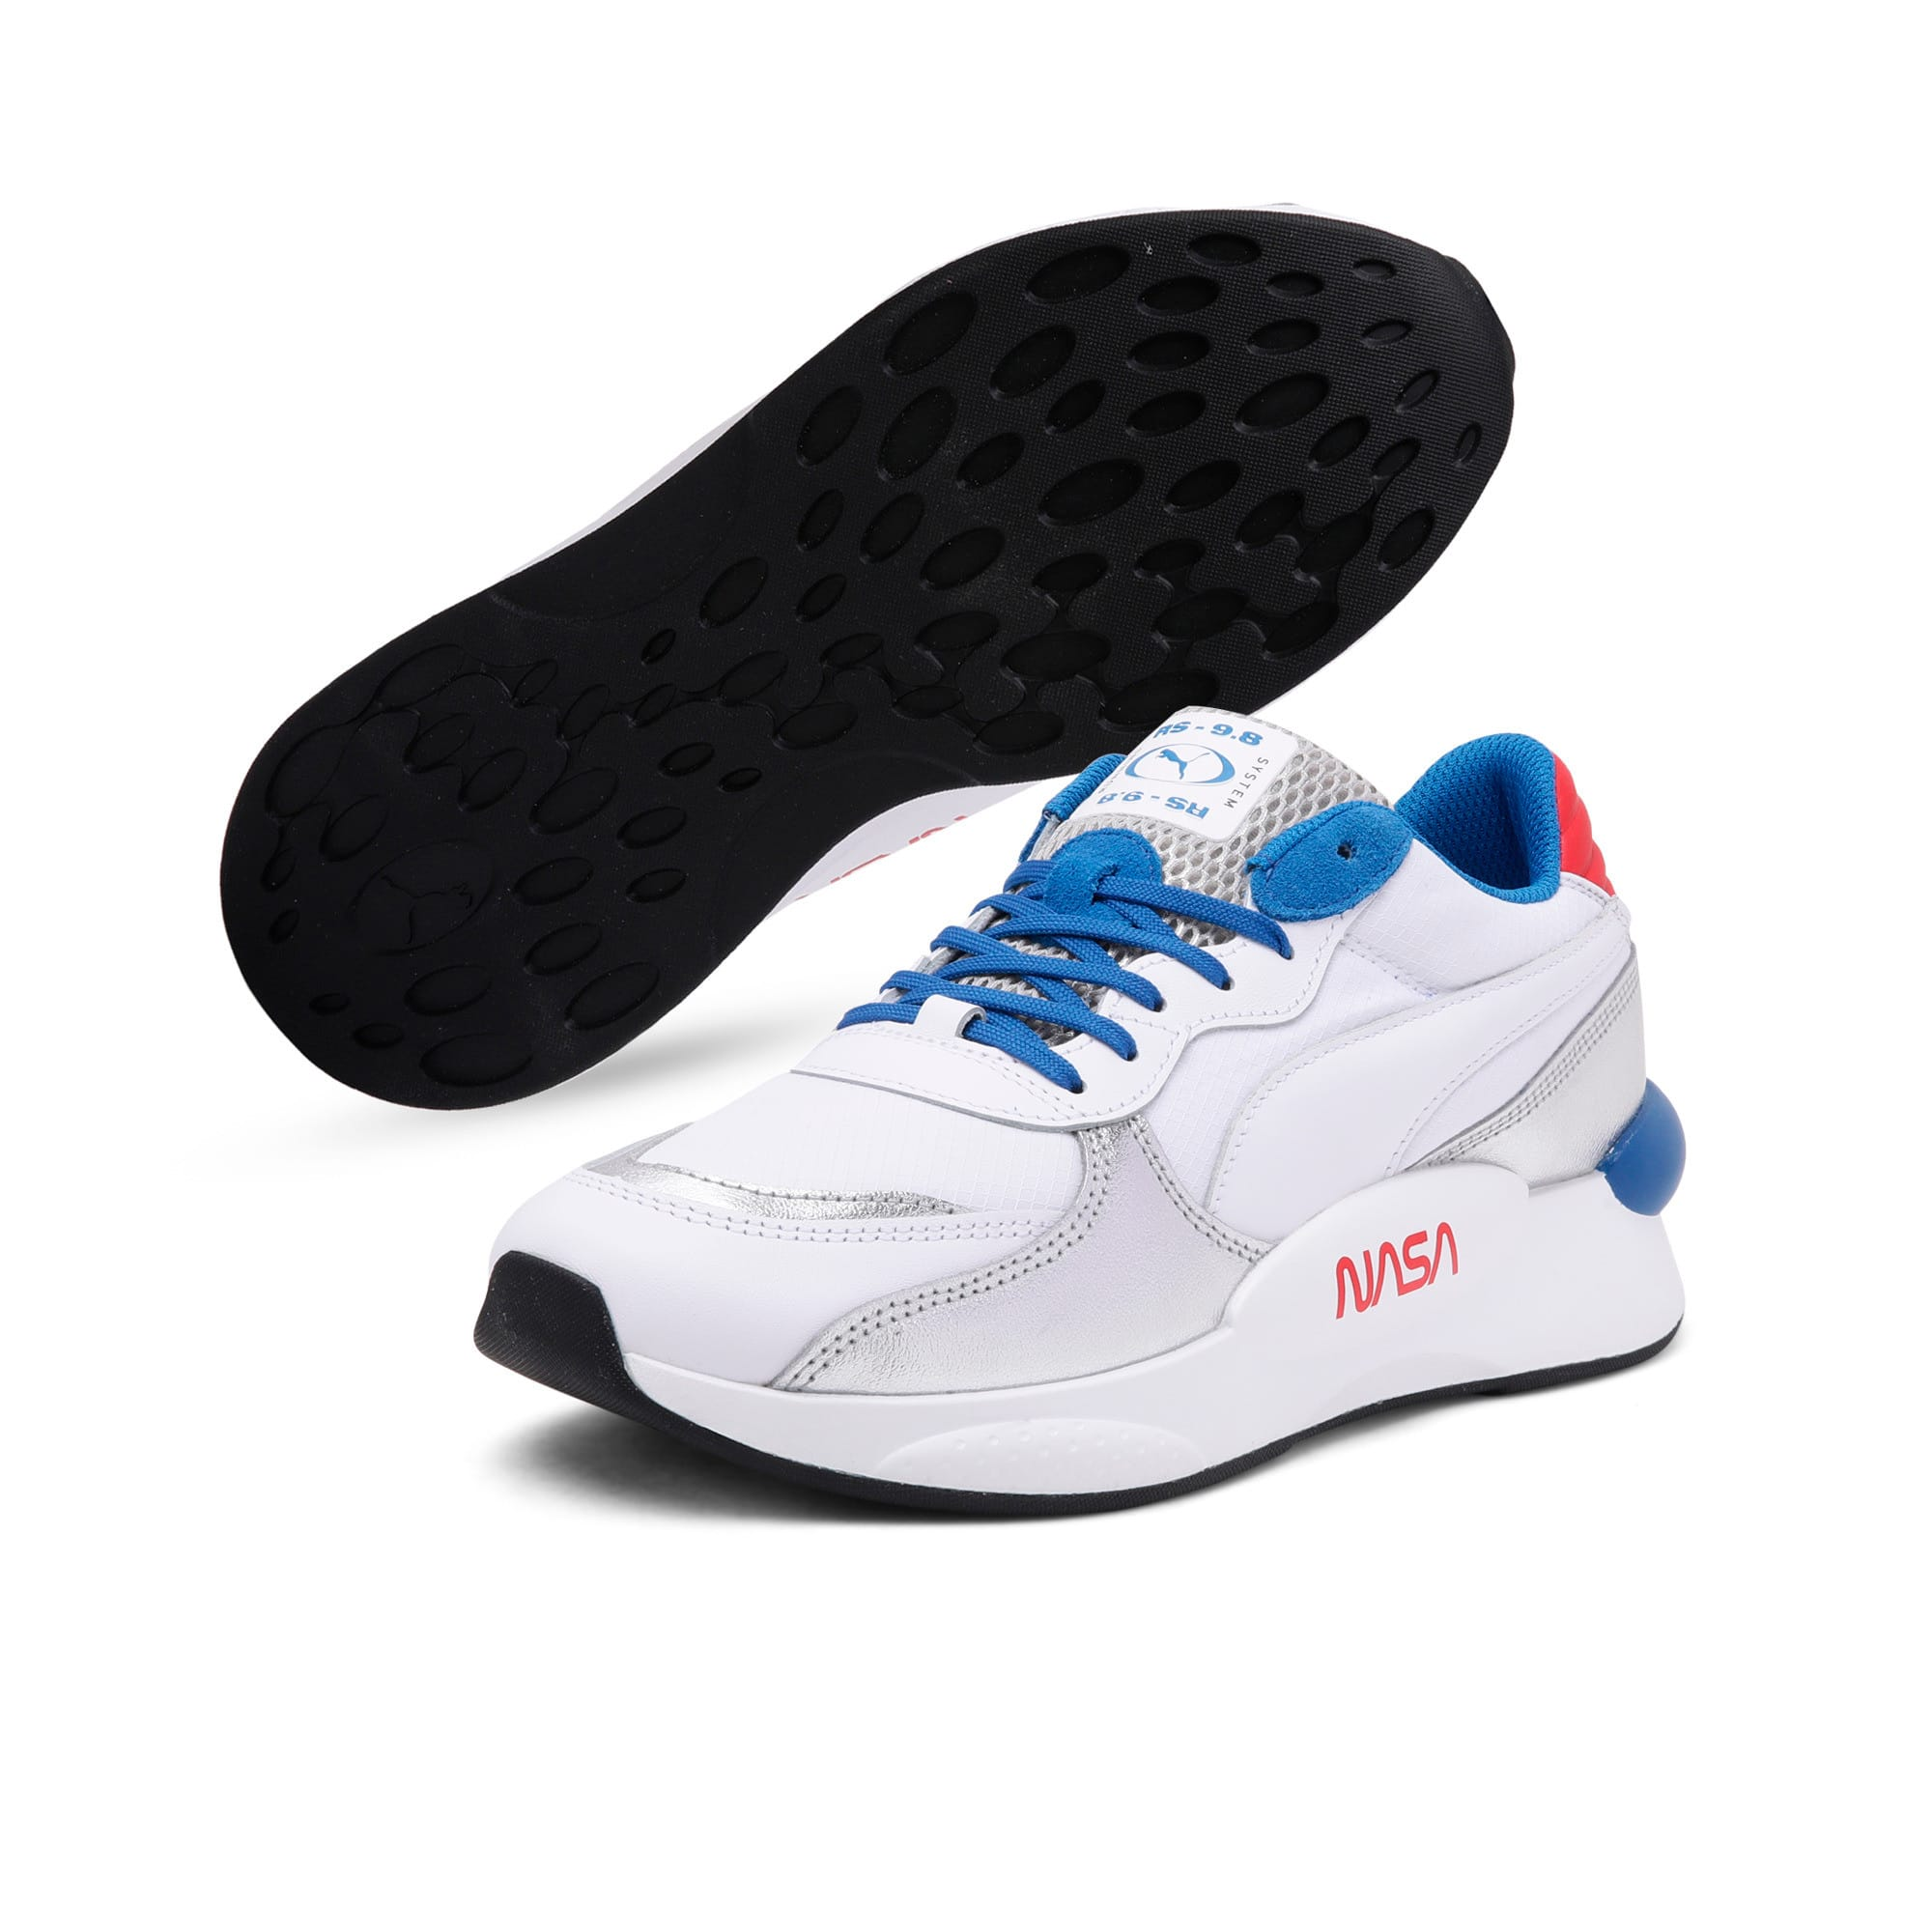 Thumbnail 2 of RS 9.8 Space Explorer Trainers, Puma White-Puma Silver, medium-IND